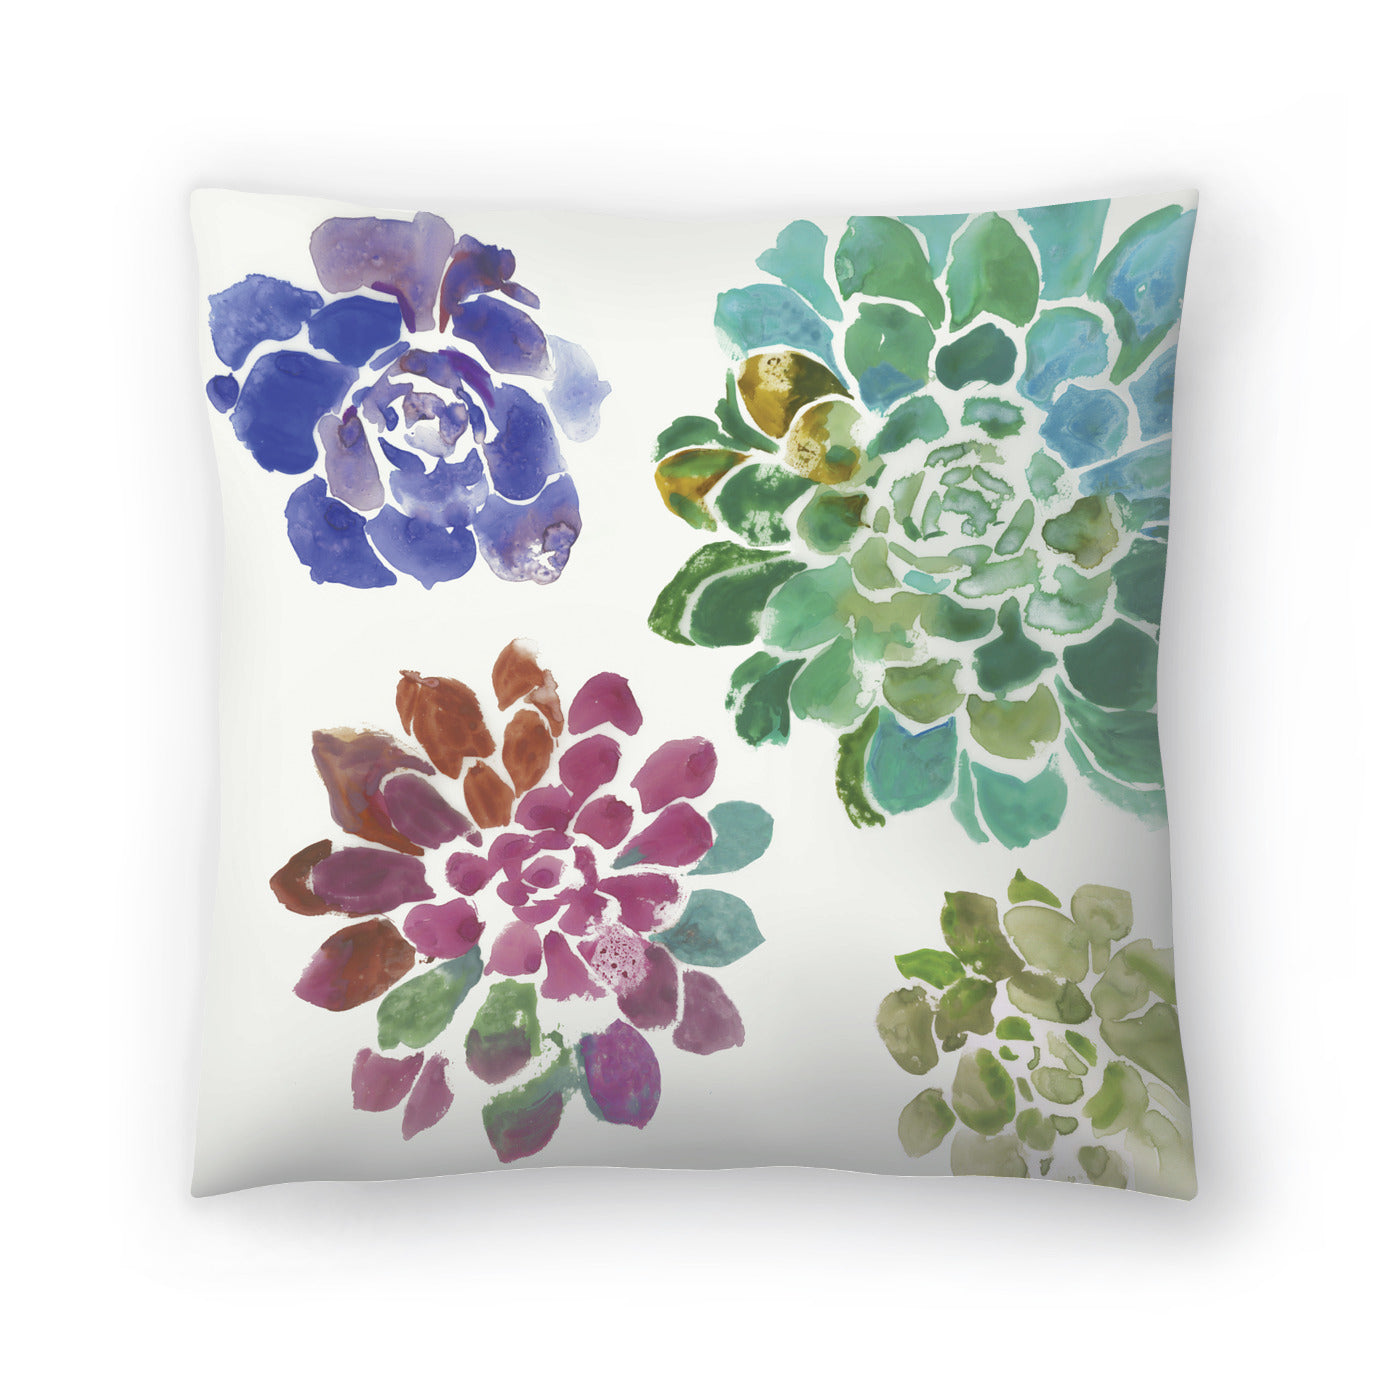 Water Succulents Ii by PI Creative Art Decorative Pillow - Decorative Pillow - Americanflat